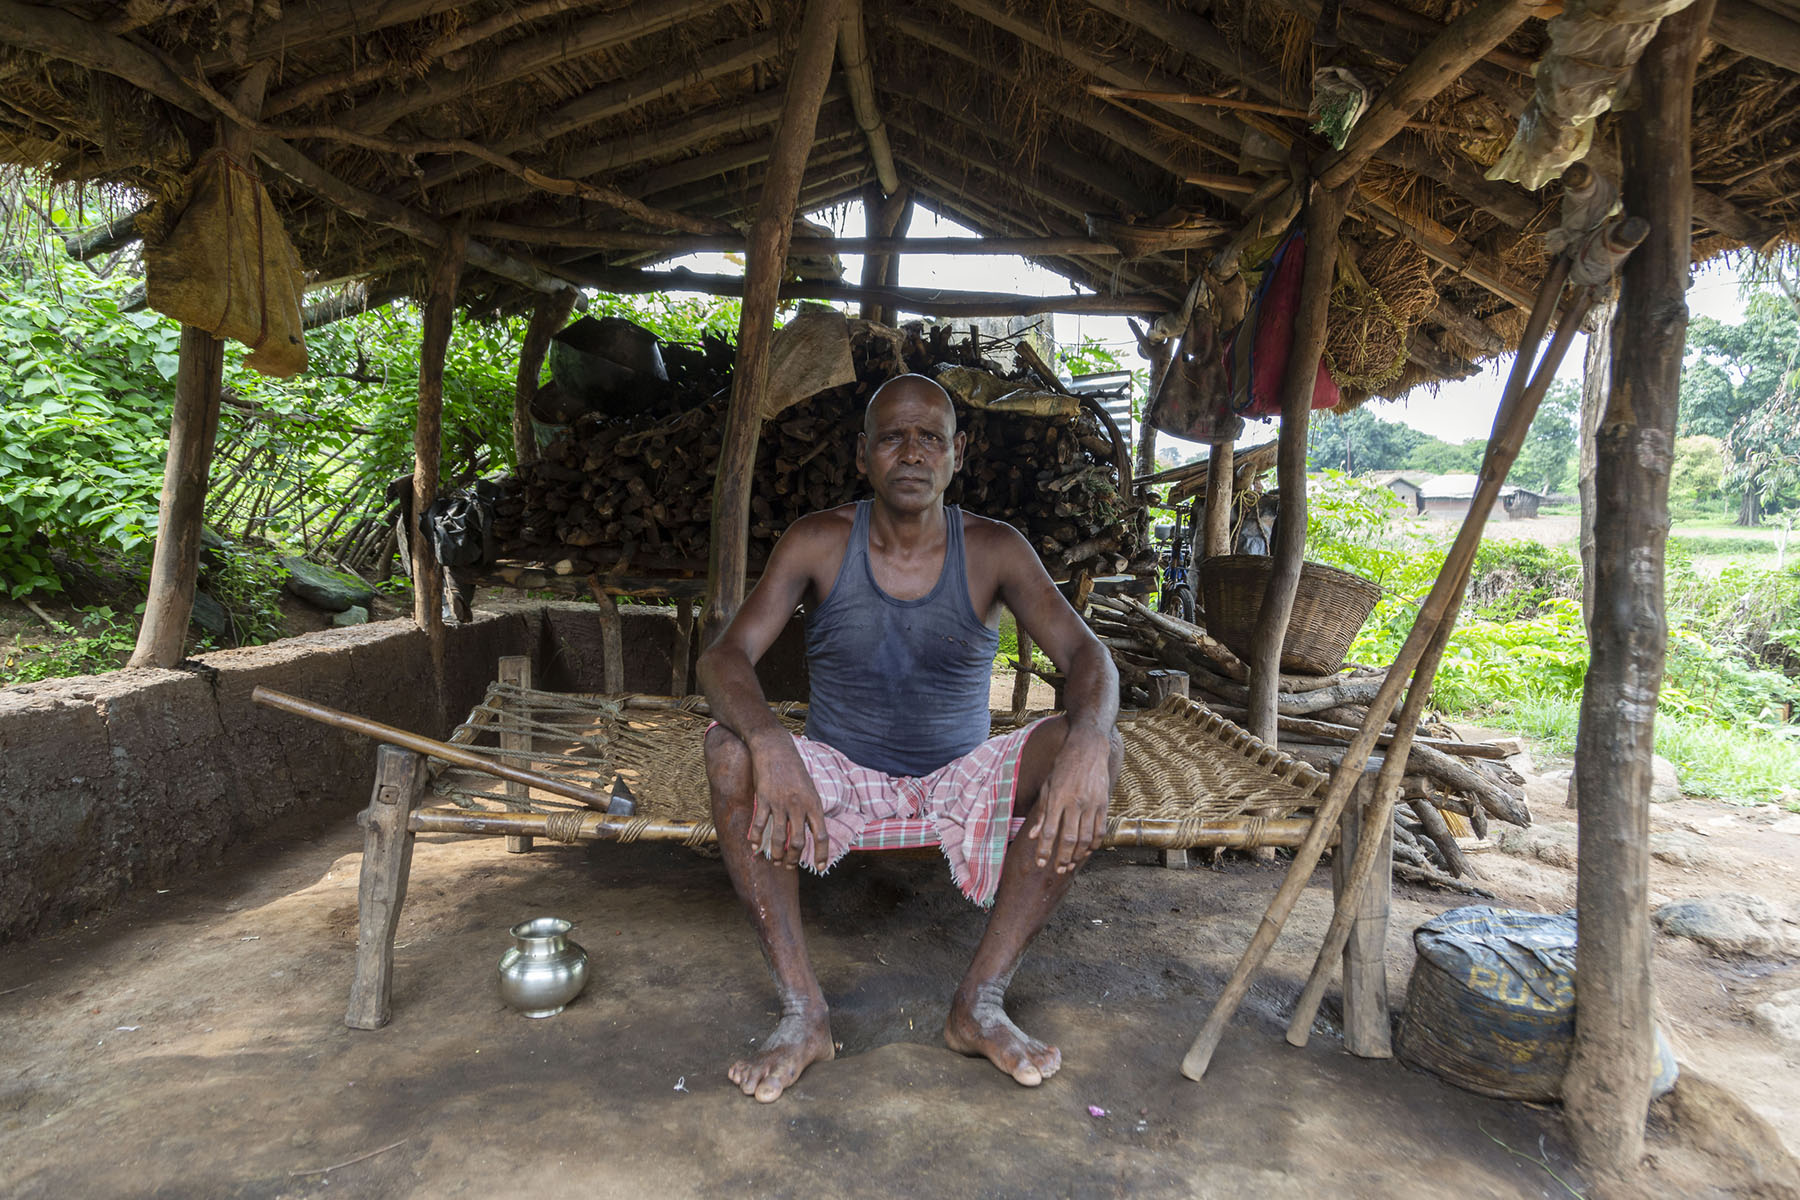 Suren Murmu (65) sits on a charpai (wooden string cot) in a small shed. He has a shaved head on which white stubble has grown. His hands are on his knees and he is looking straight into the camera. He wears a black banian and a faded red checked towel wrapped around his hips. The shed has a thatched roof propped up by wooden poles. It has no walls, the sides are open. Suren's wooden crutches are leaning against one of the upright poles. There is a small steel water pot on the floor next to his feet.